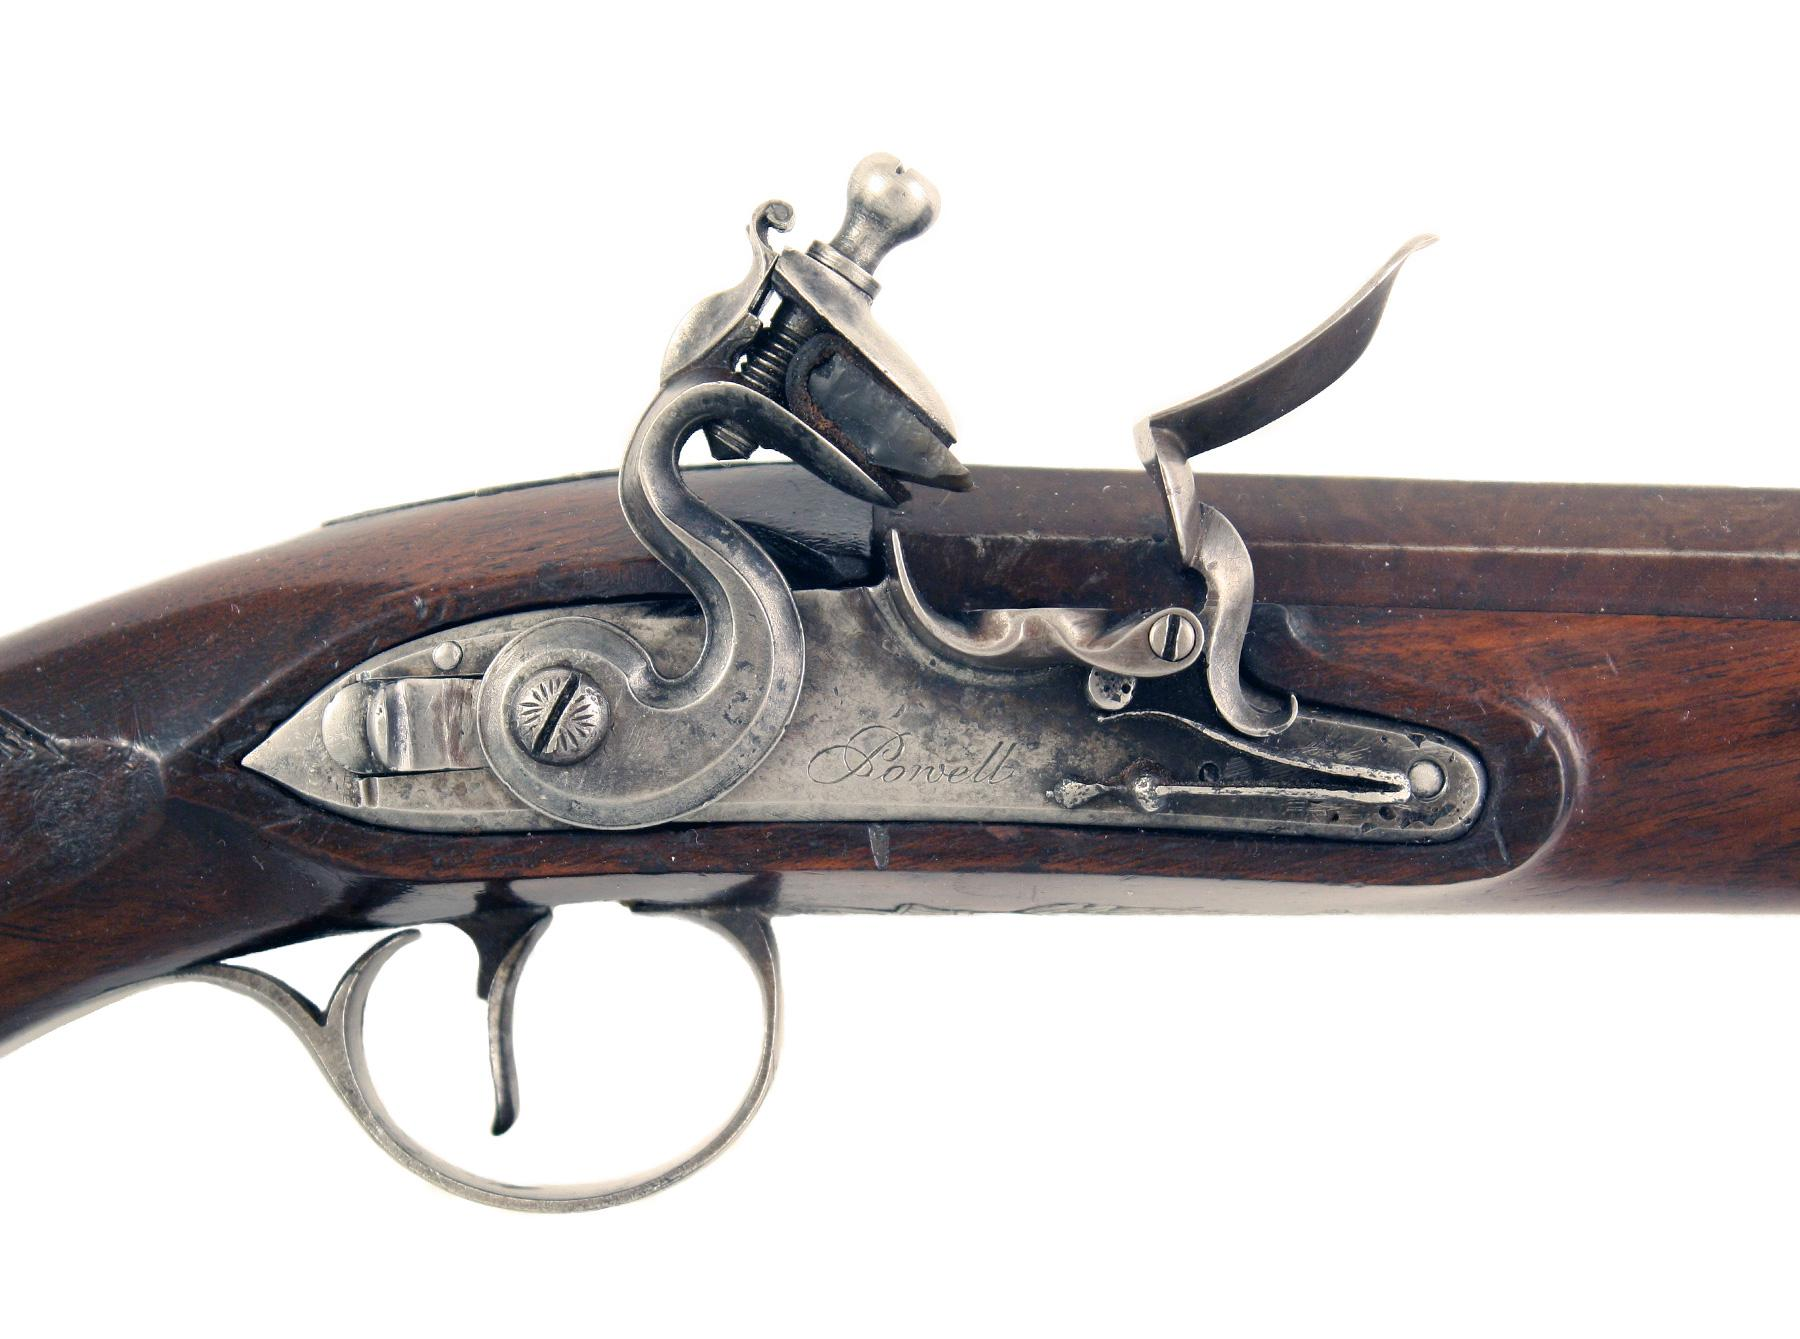 An Irish Duelling Pistol by Powell of Dublin